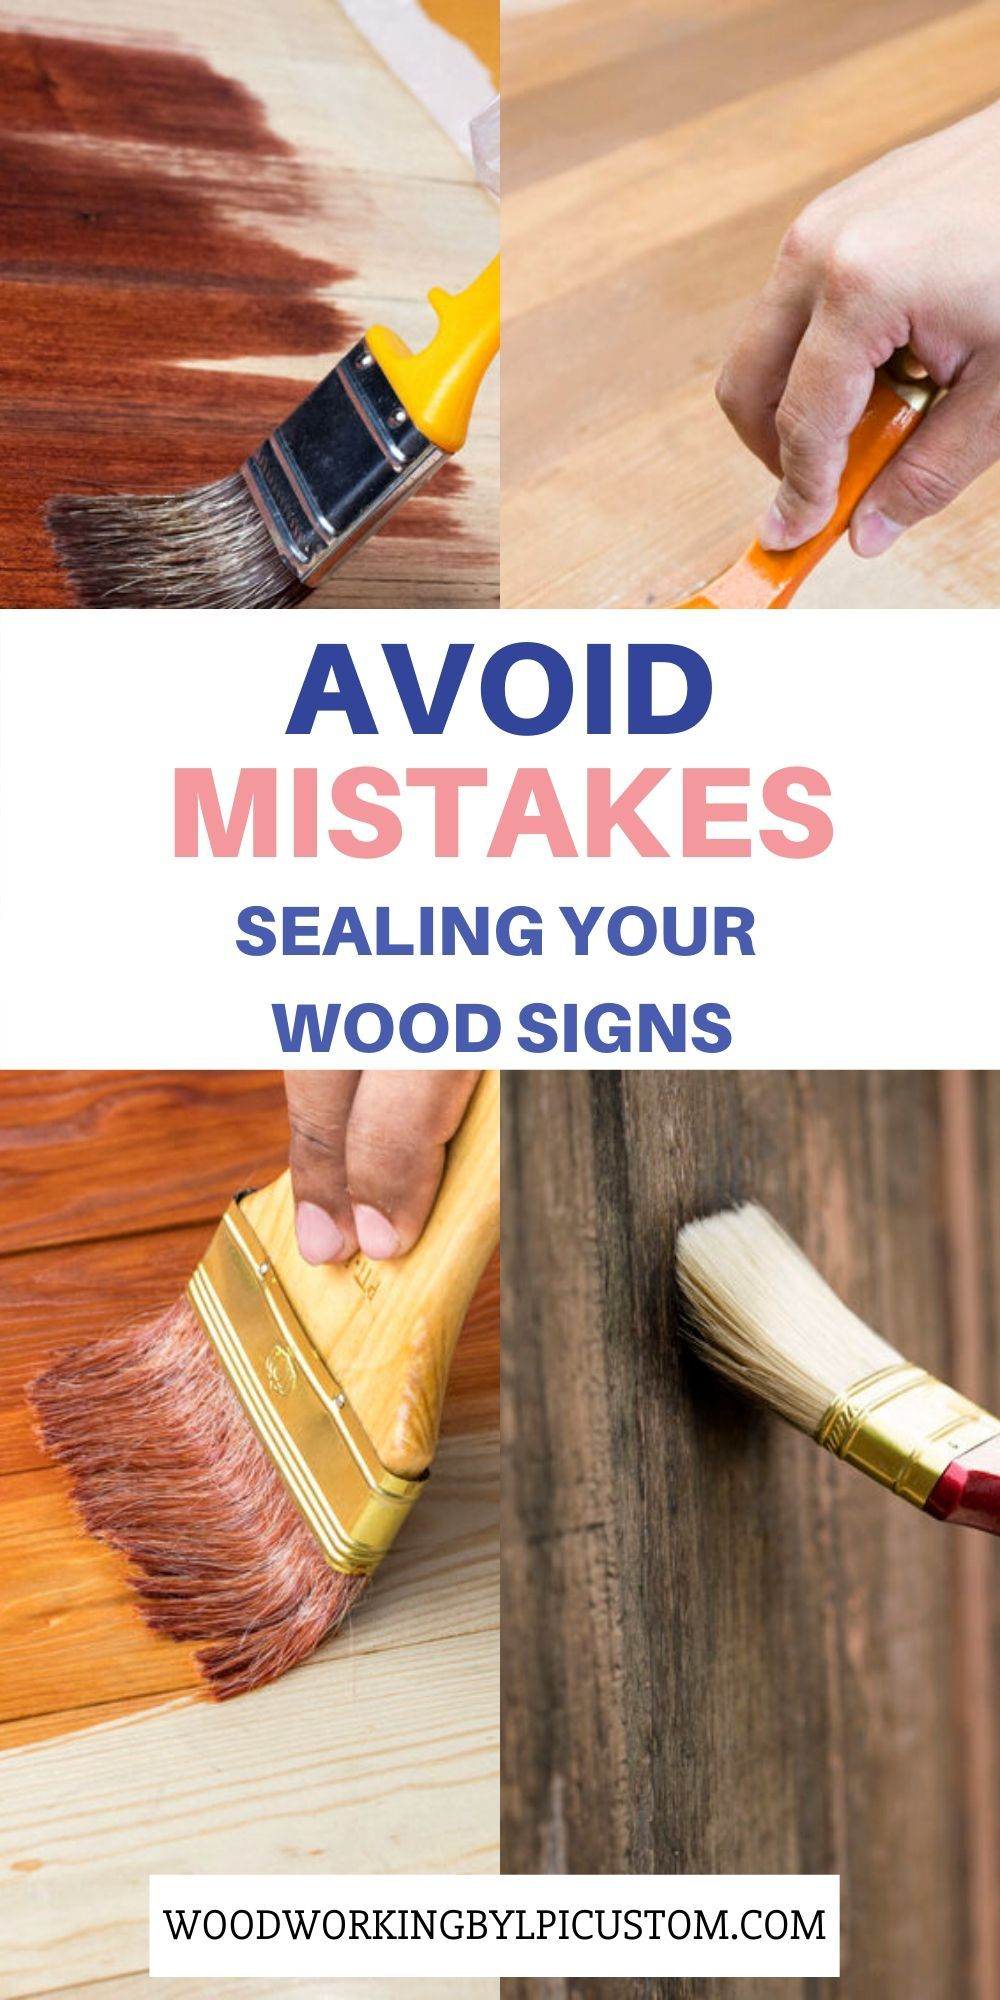 Avoid Mistakes Sealing Your Wood Signs Distressed Wood Diy Wood Signs Painted Wood Signs